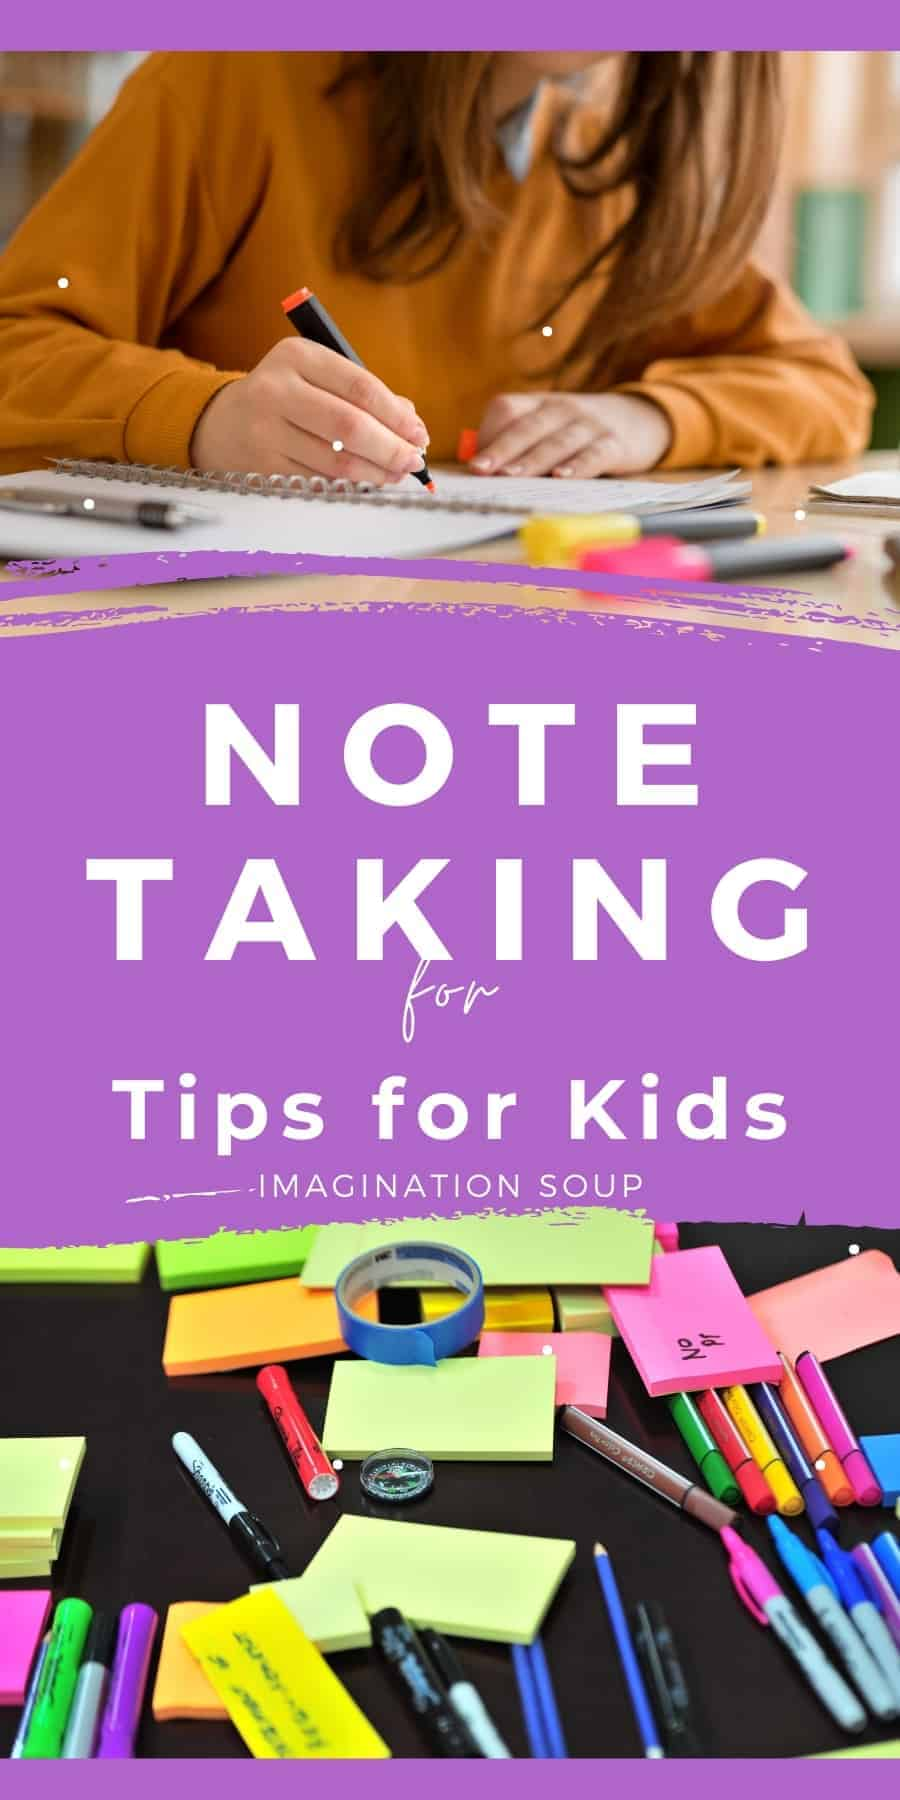 note taking tips for kids